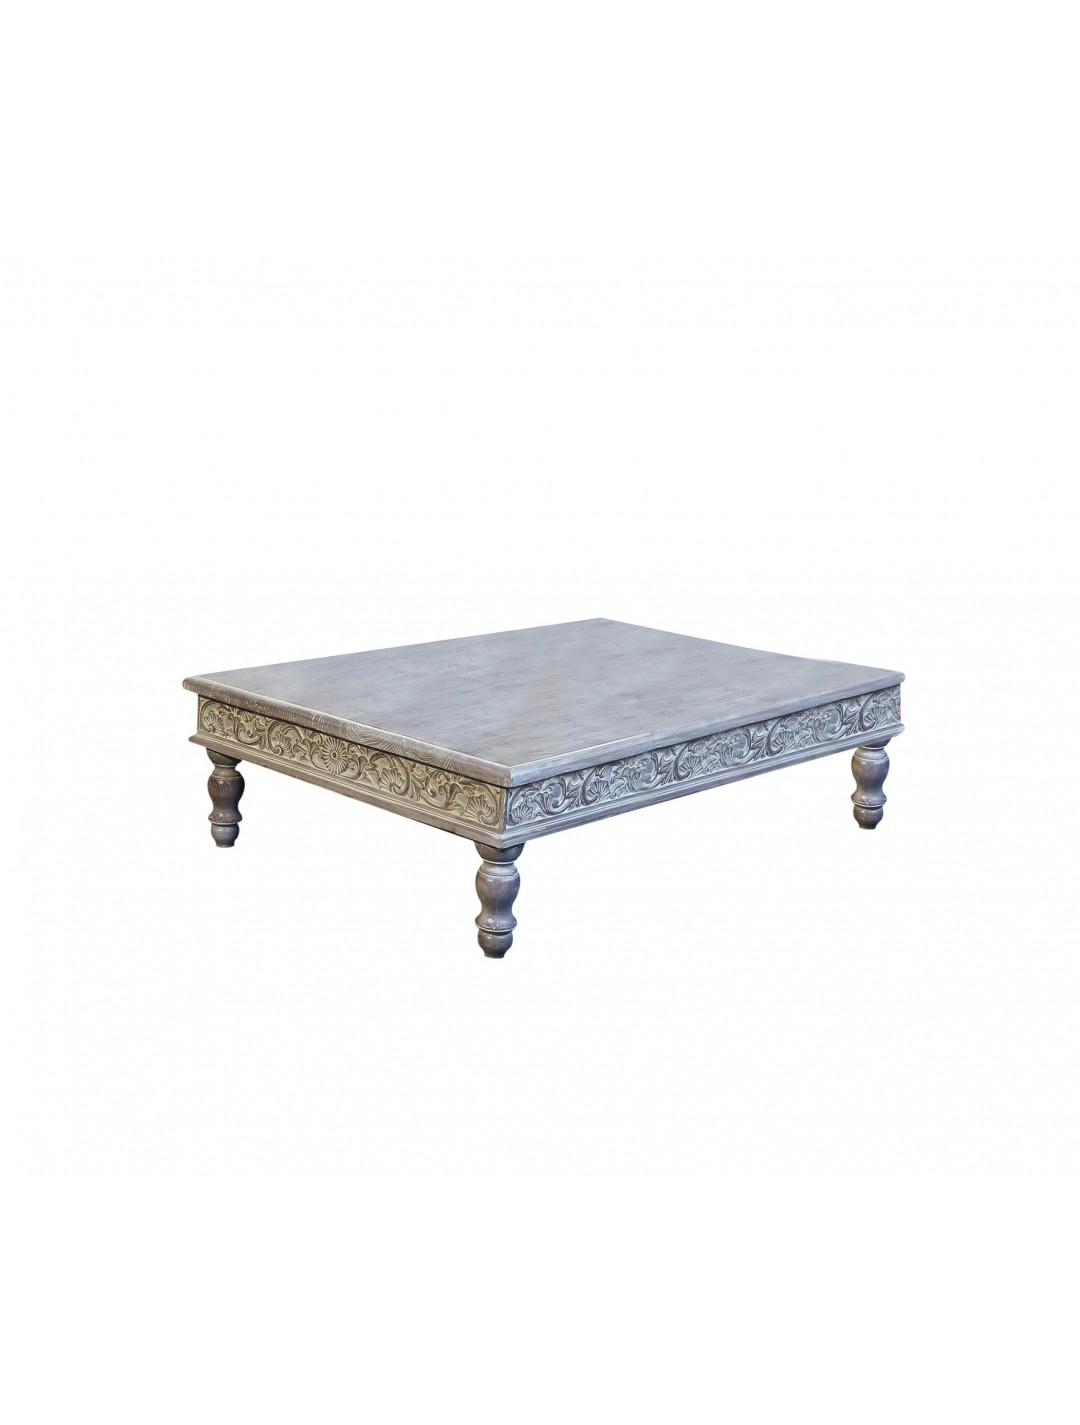 BALI COFFEE TABLE,150X100 CM